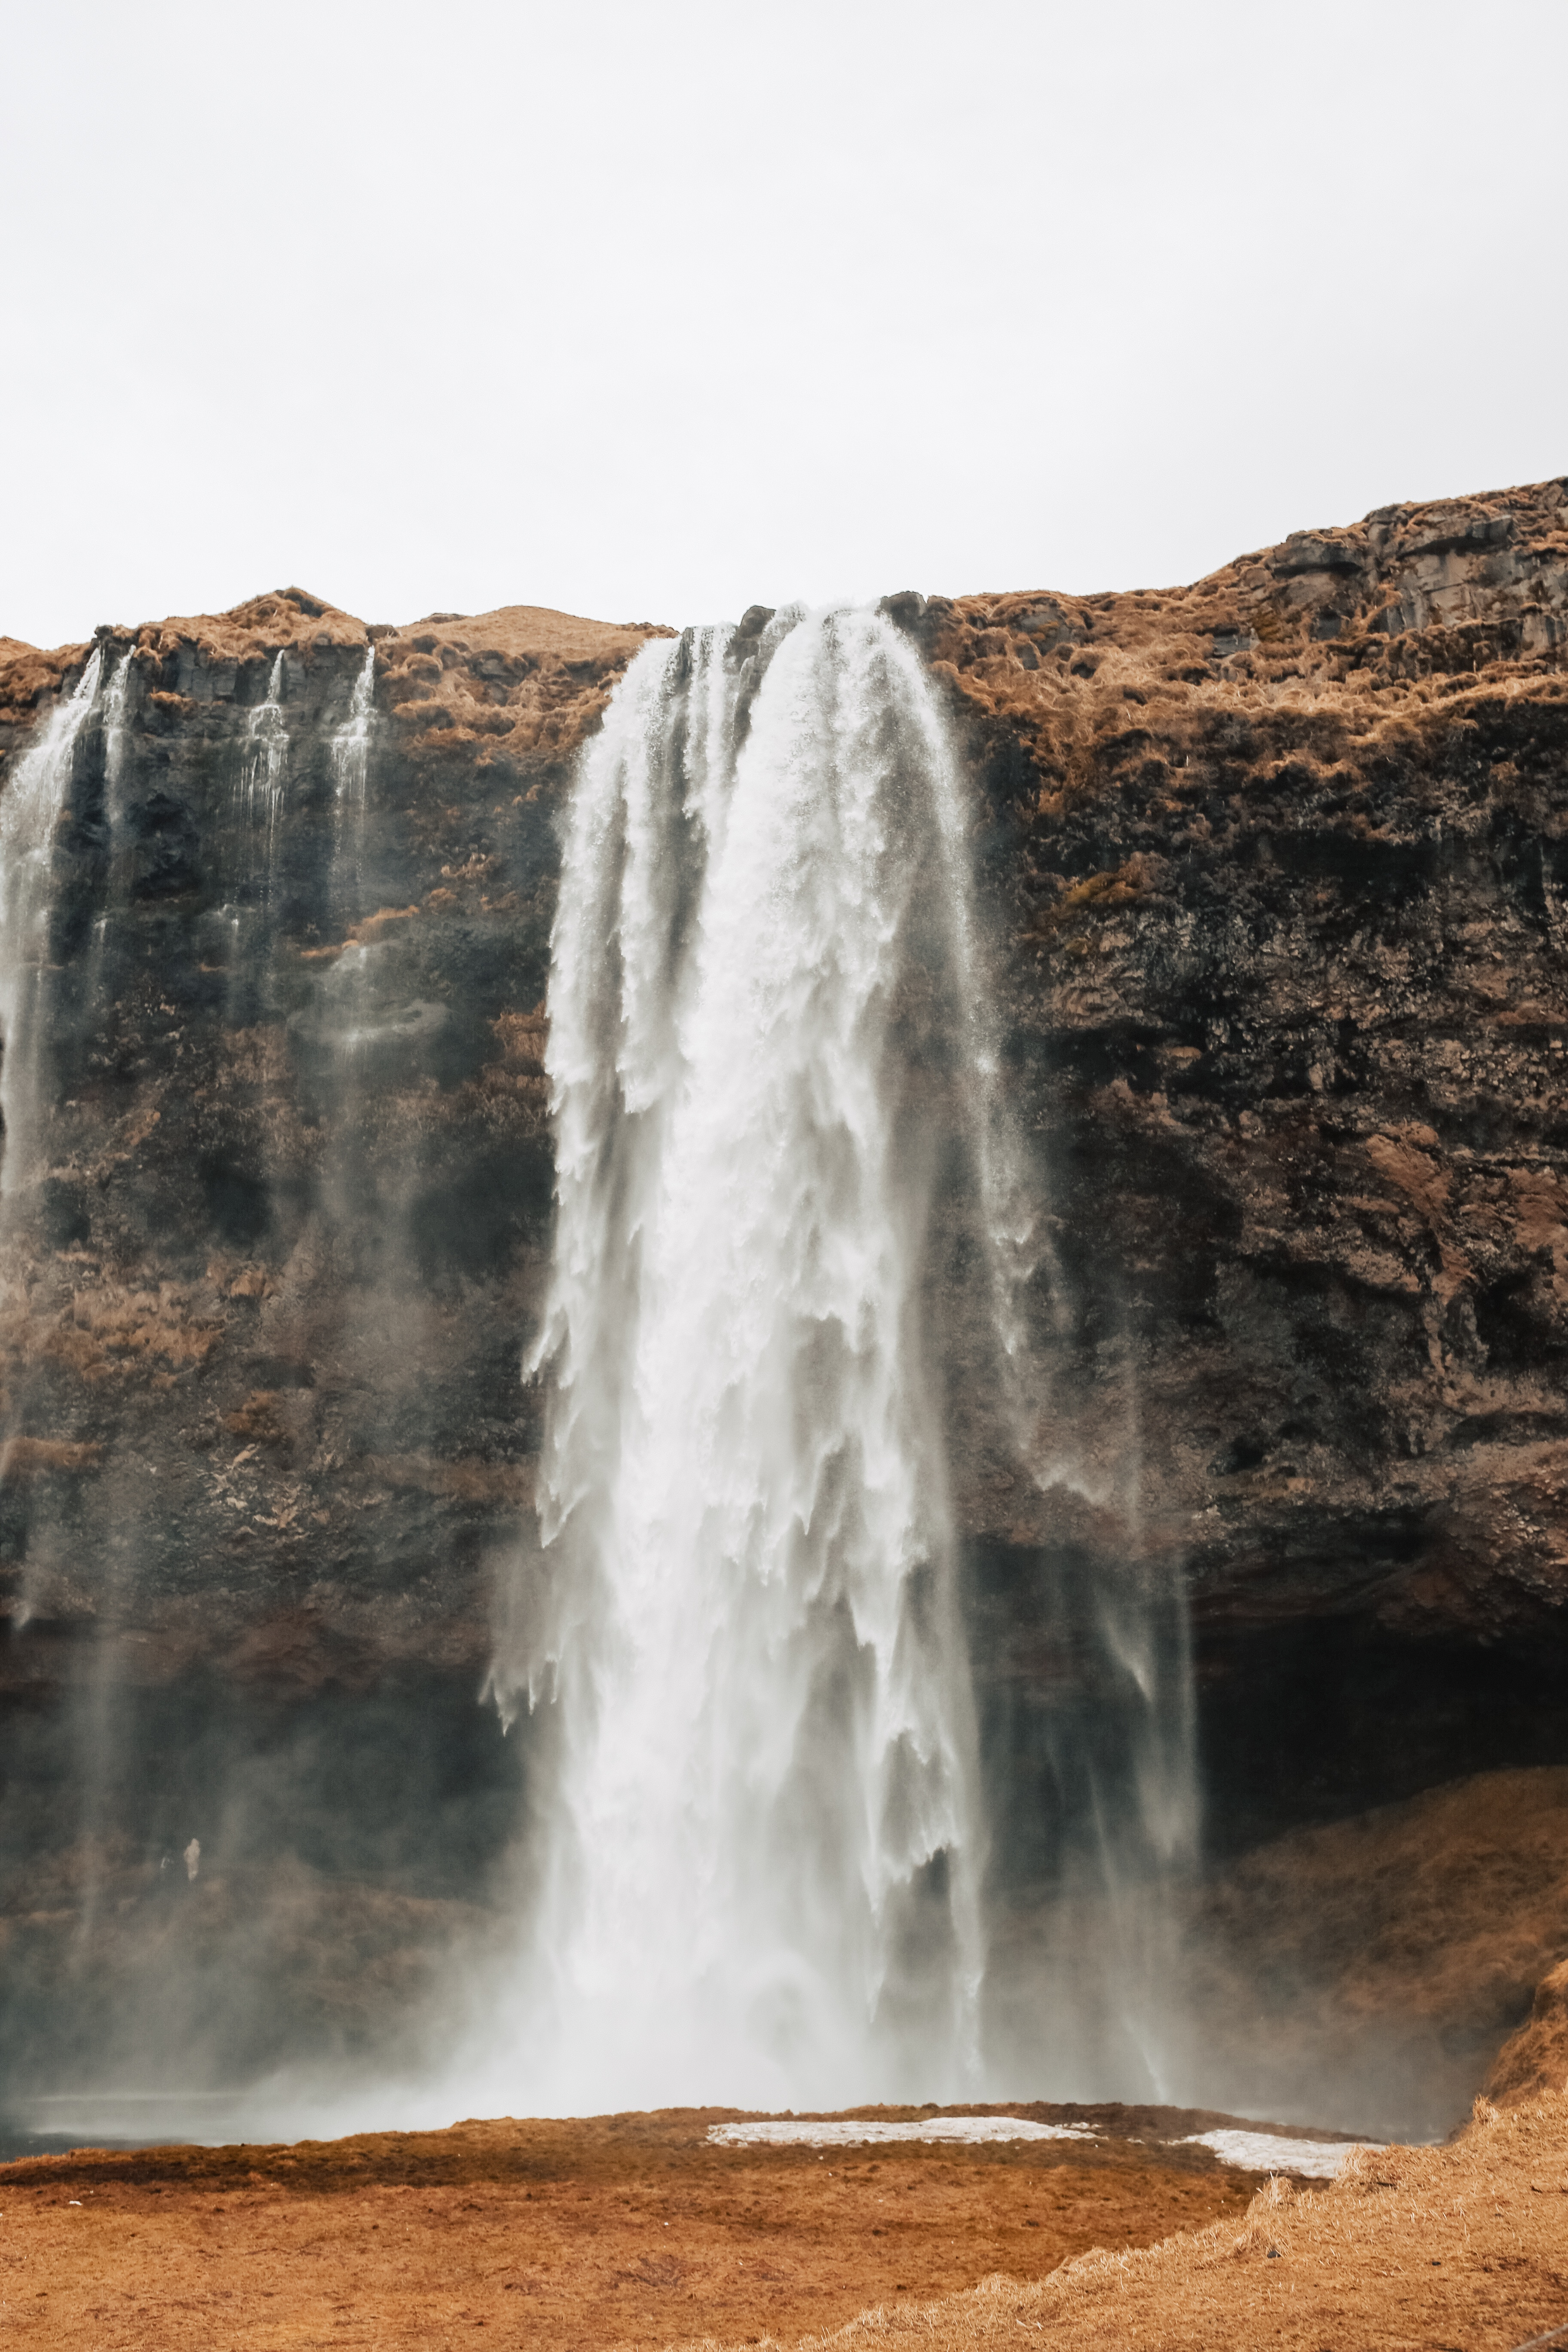 Seljalandfoss was a gorgeous waterfall in South Iceland. Visitors can hike to the top of the waterfall, or go behind the stream of water to capture it from behind.